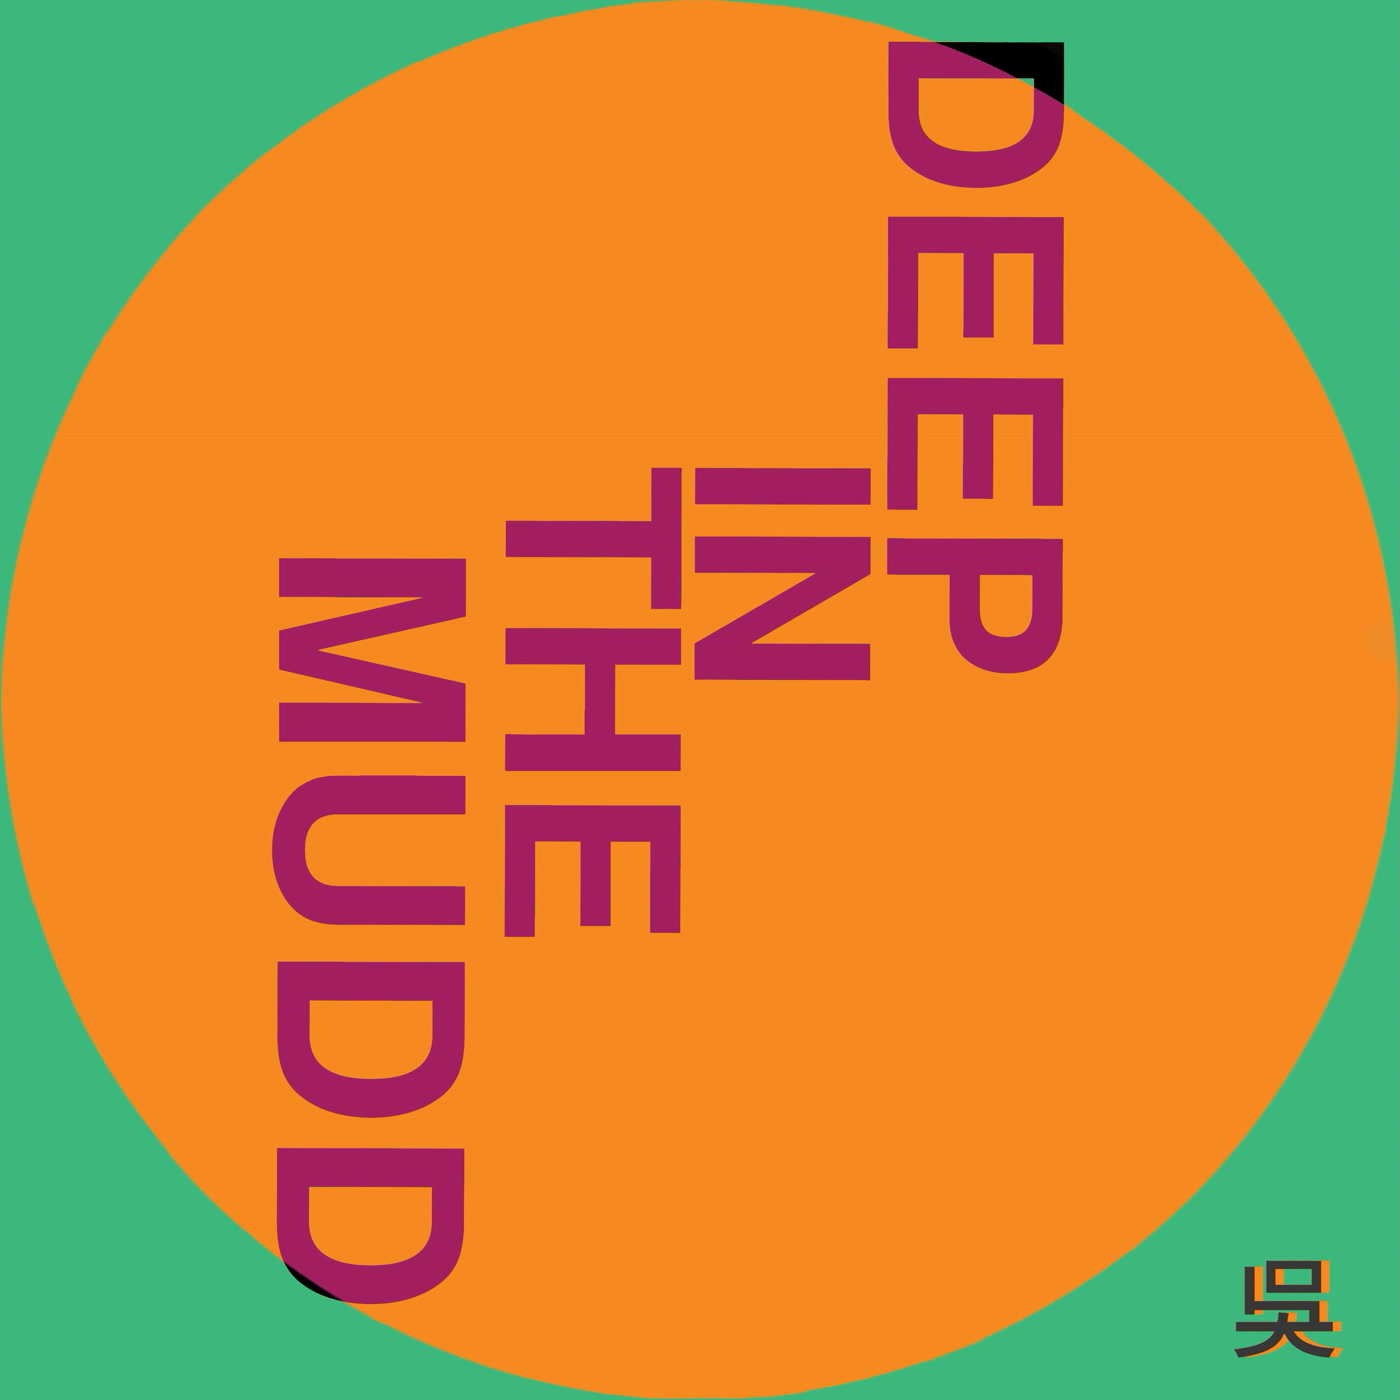 HENRY WU, DEEP IN THE MUDD, EGLO RECORDS